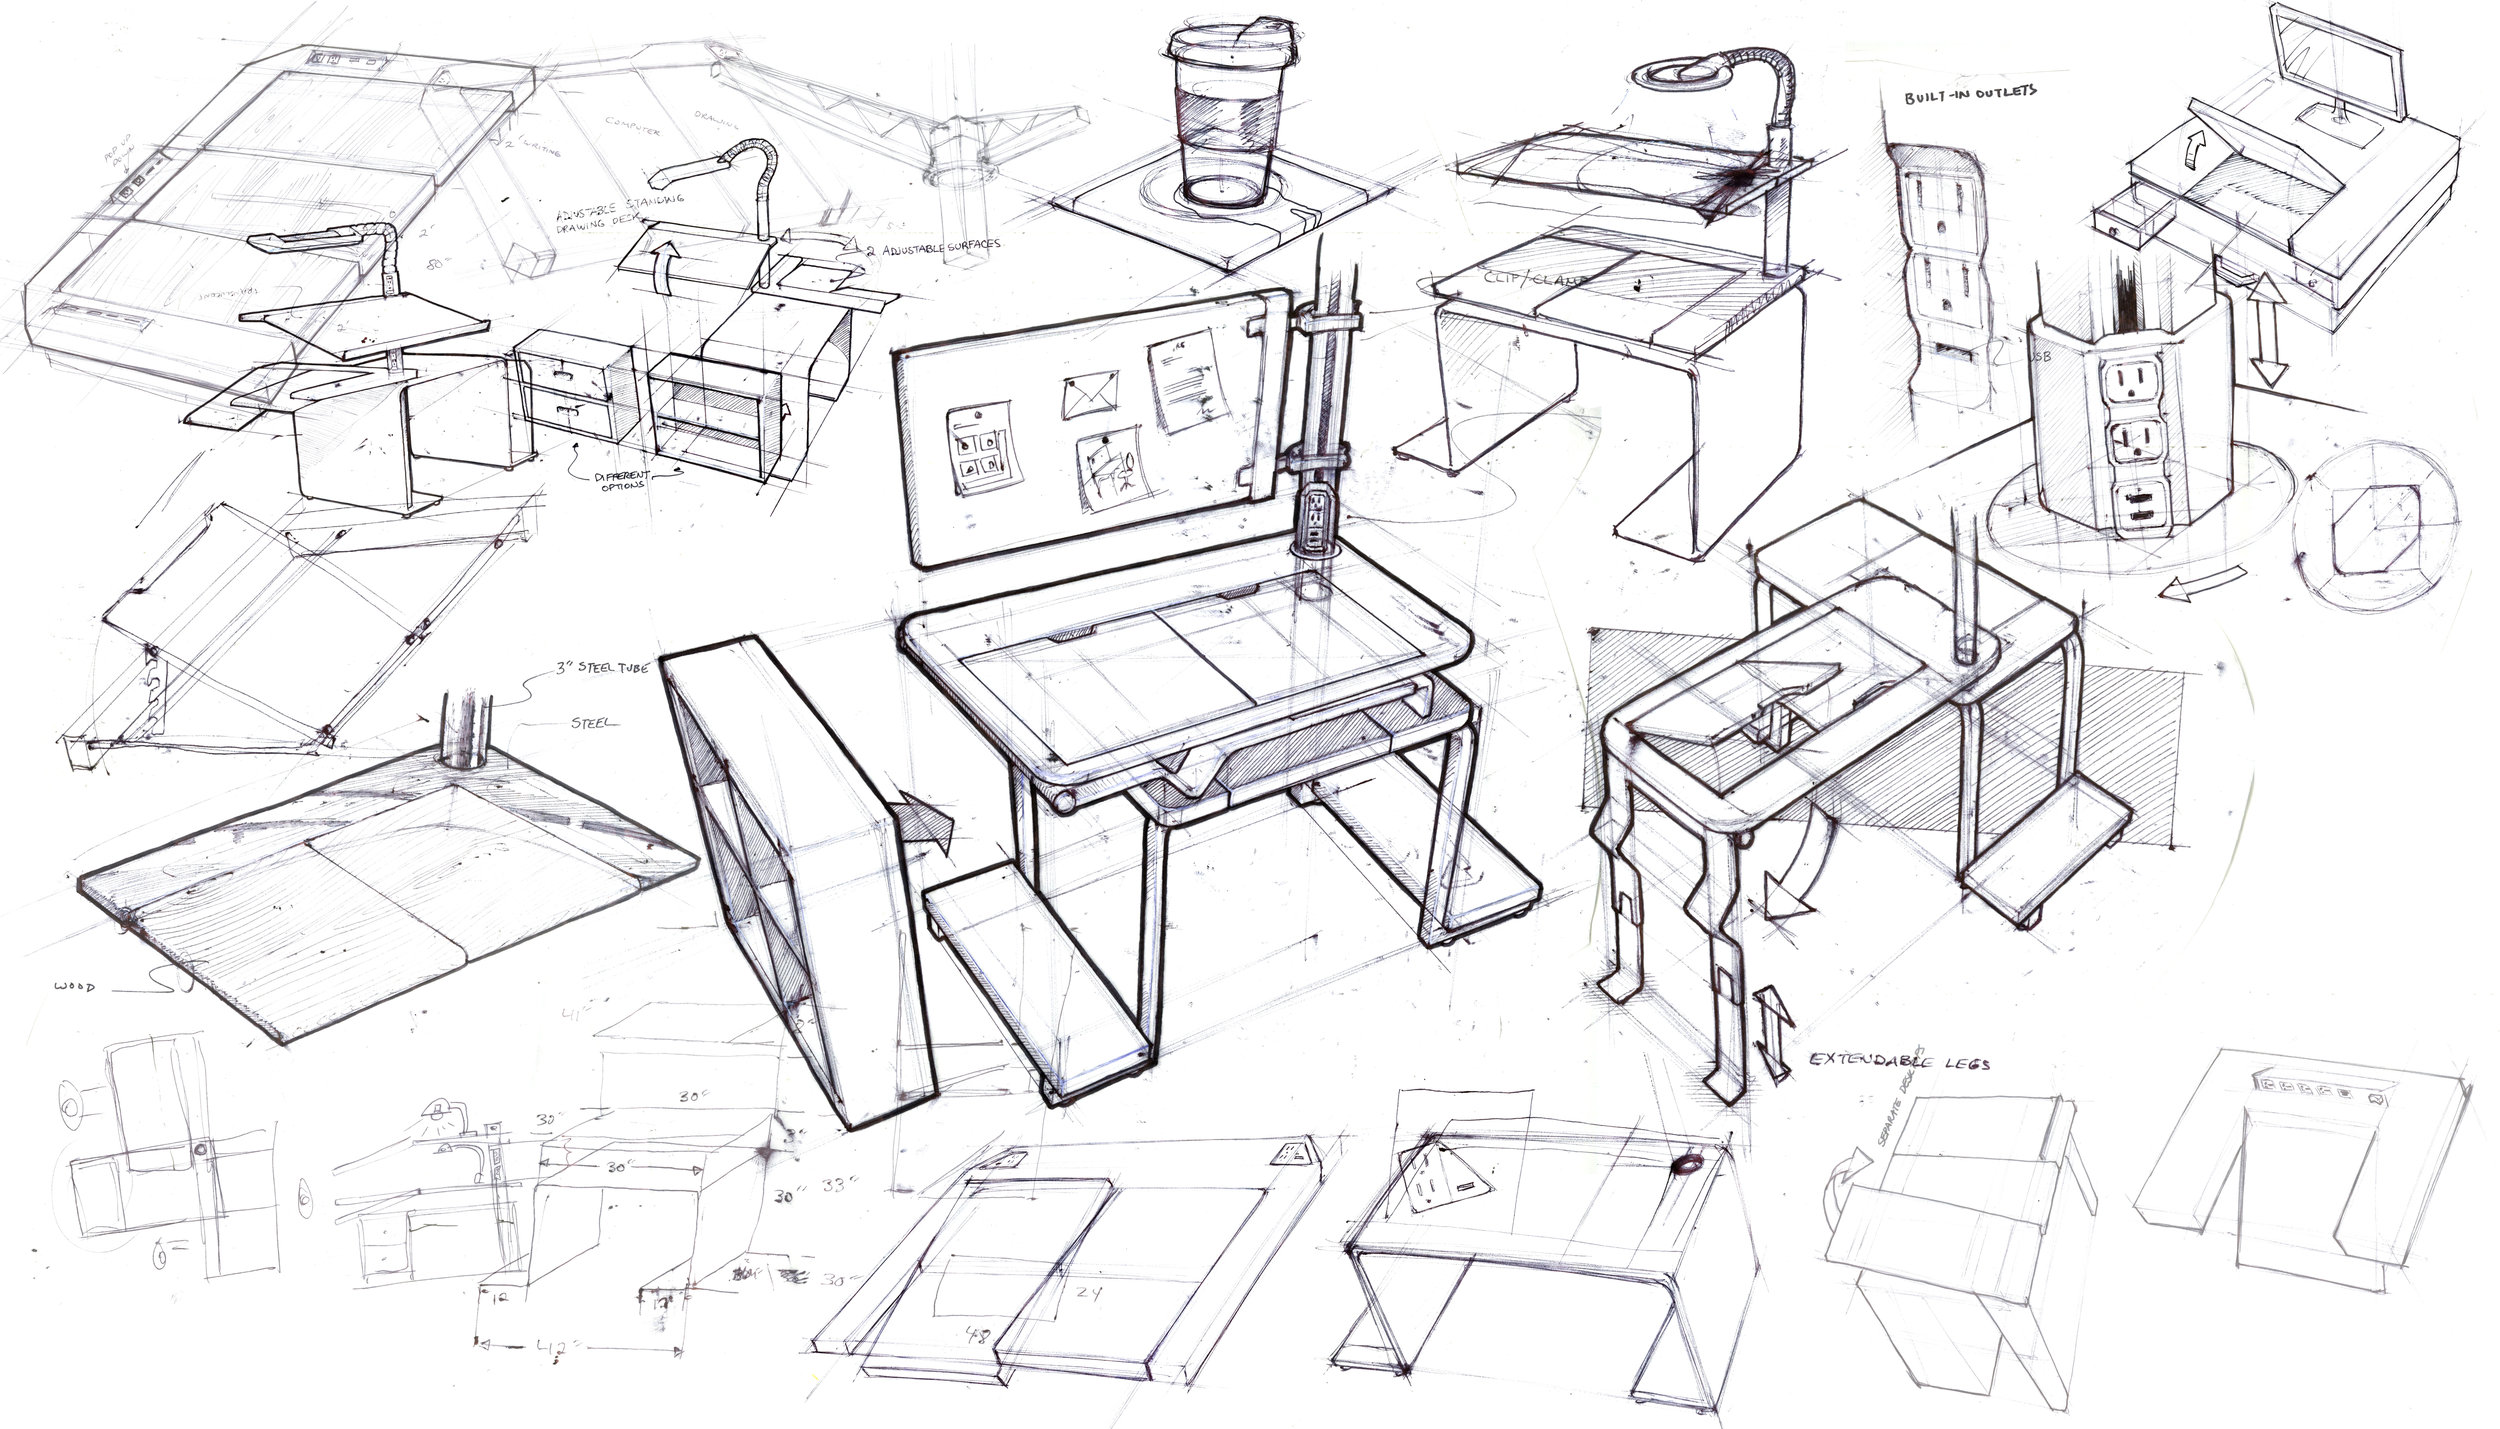 Axis Desk ideation sketches